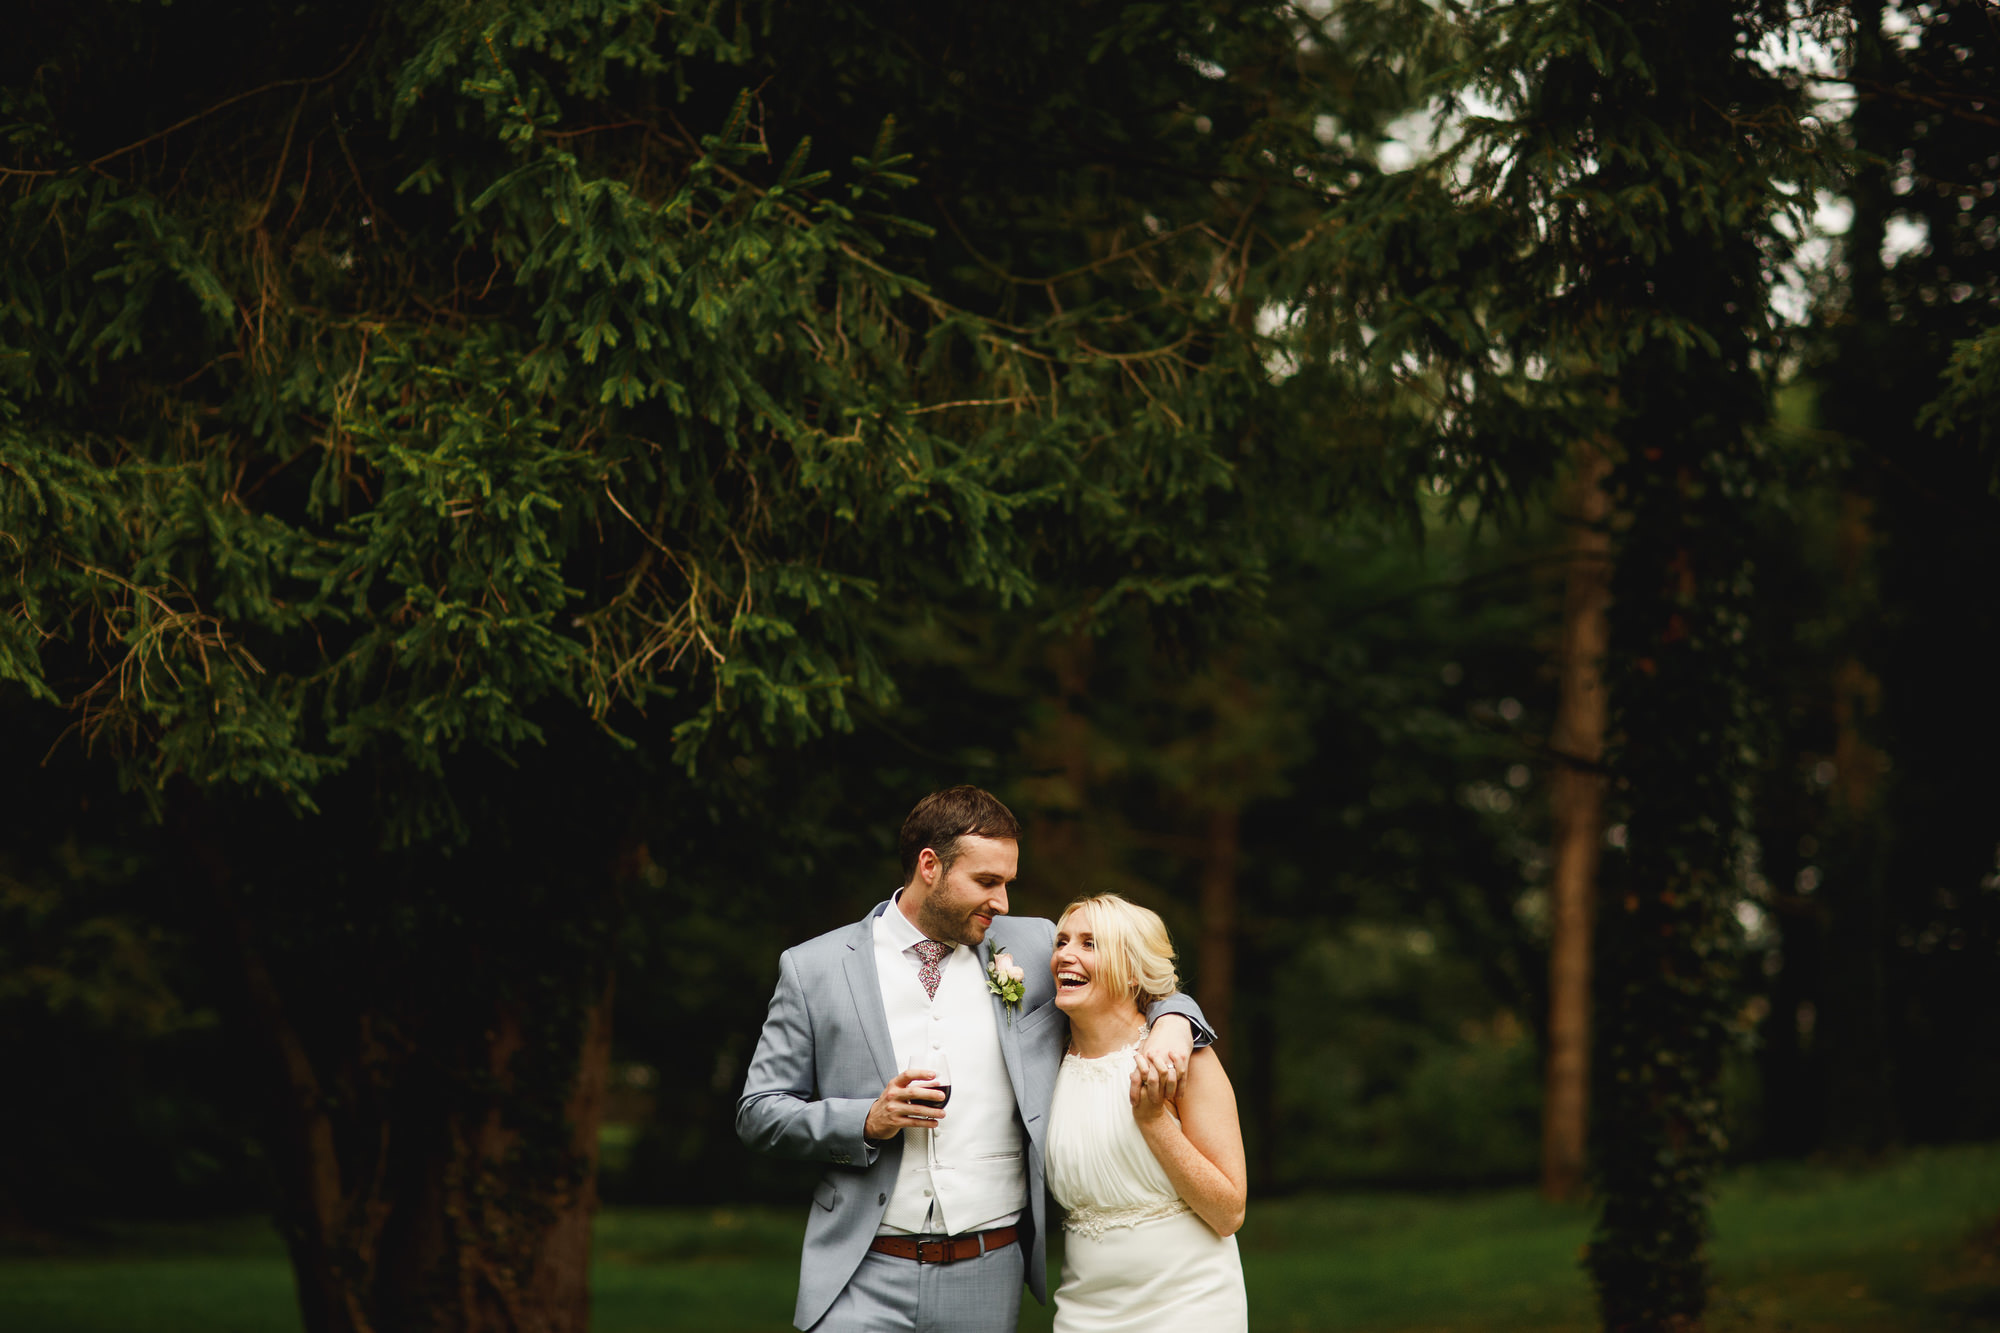 wedding-photography-mitton-hall-75